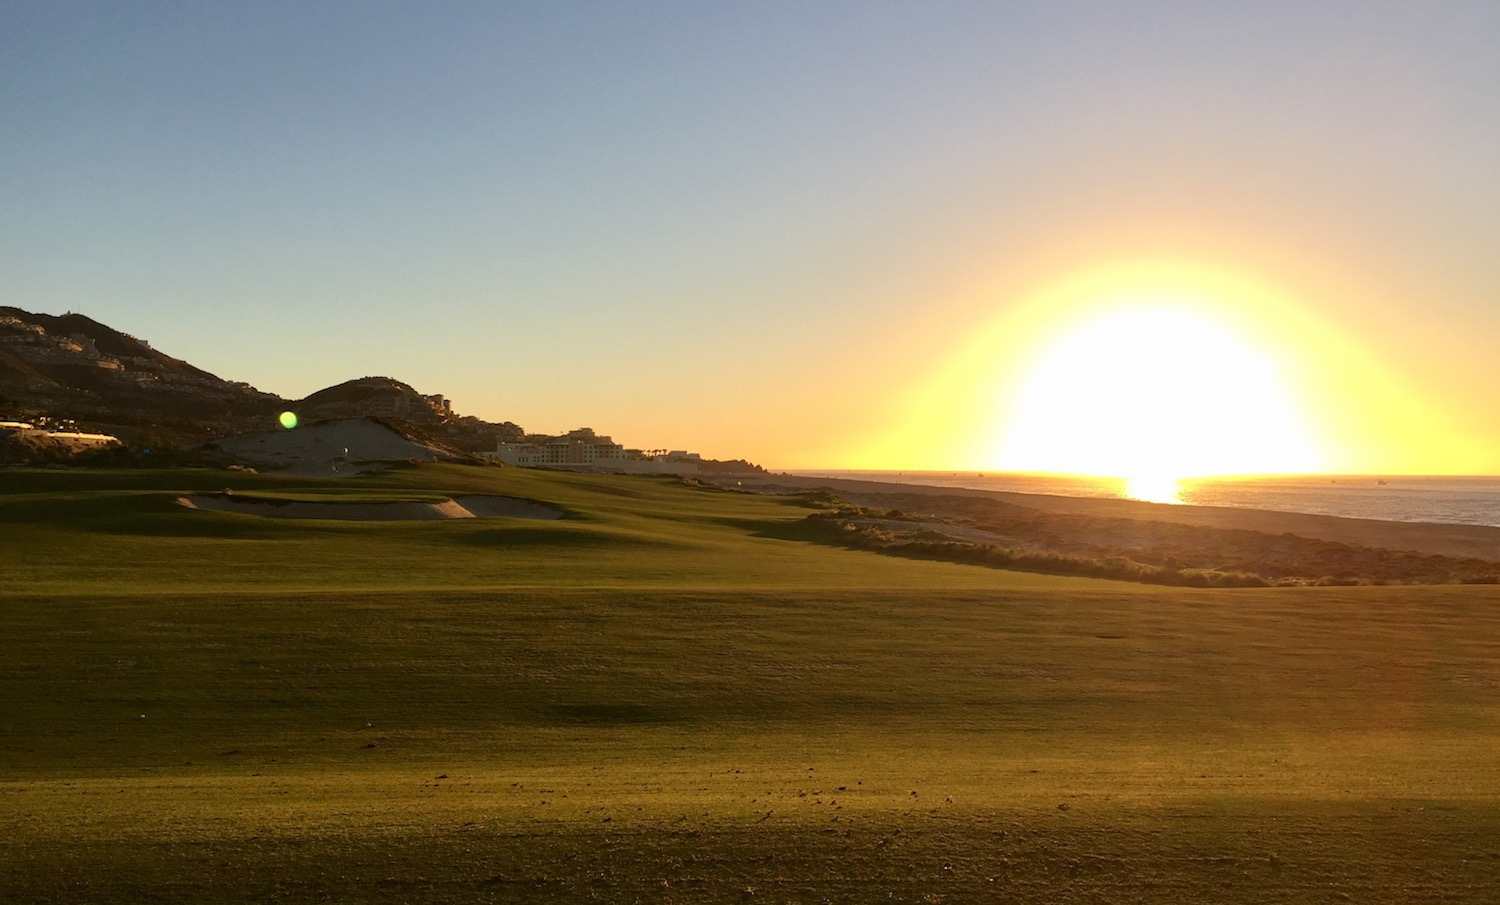 It's hard to beat a sunrise practice session at Quivira.